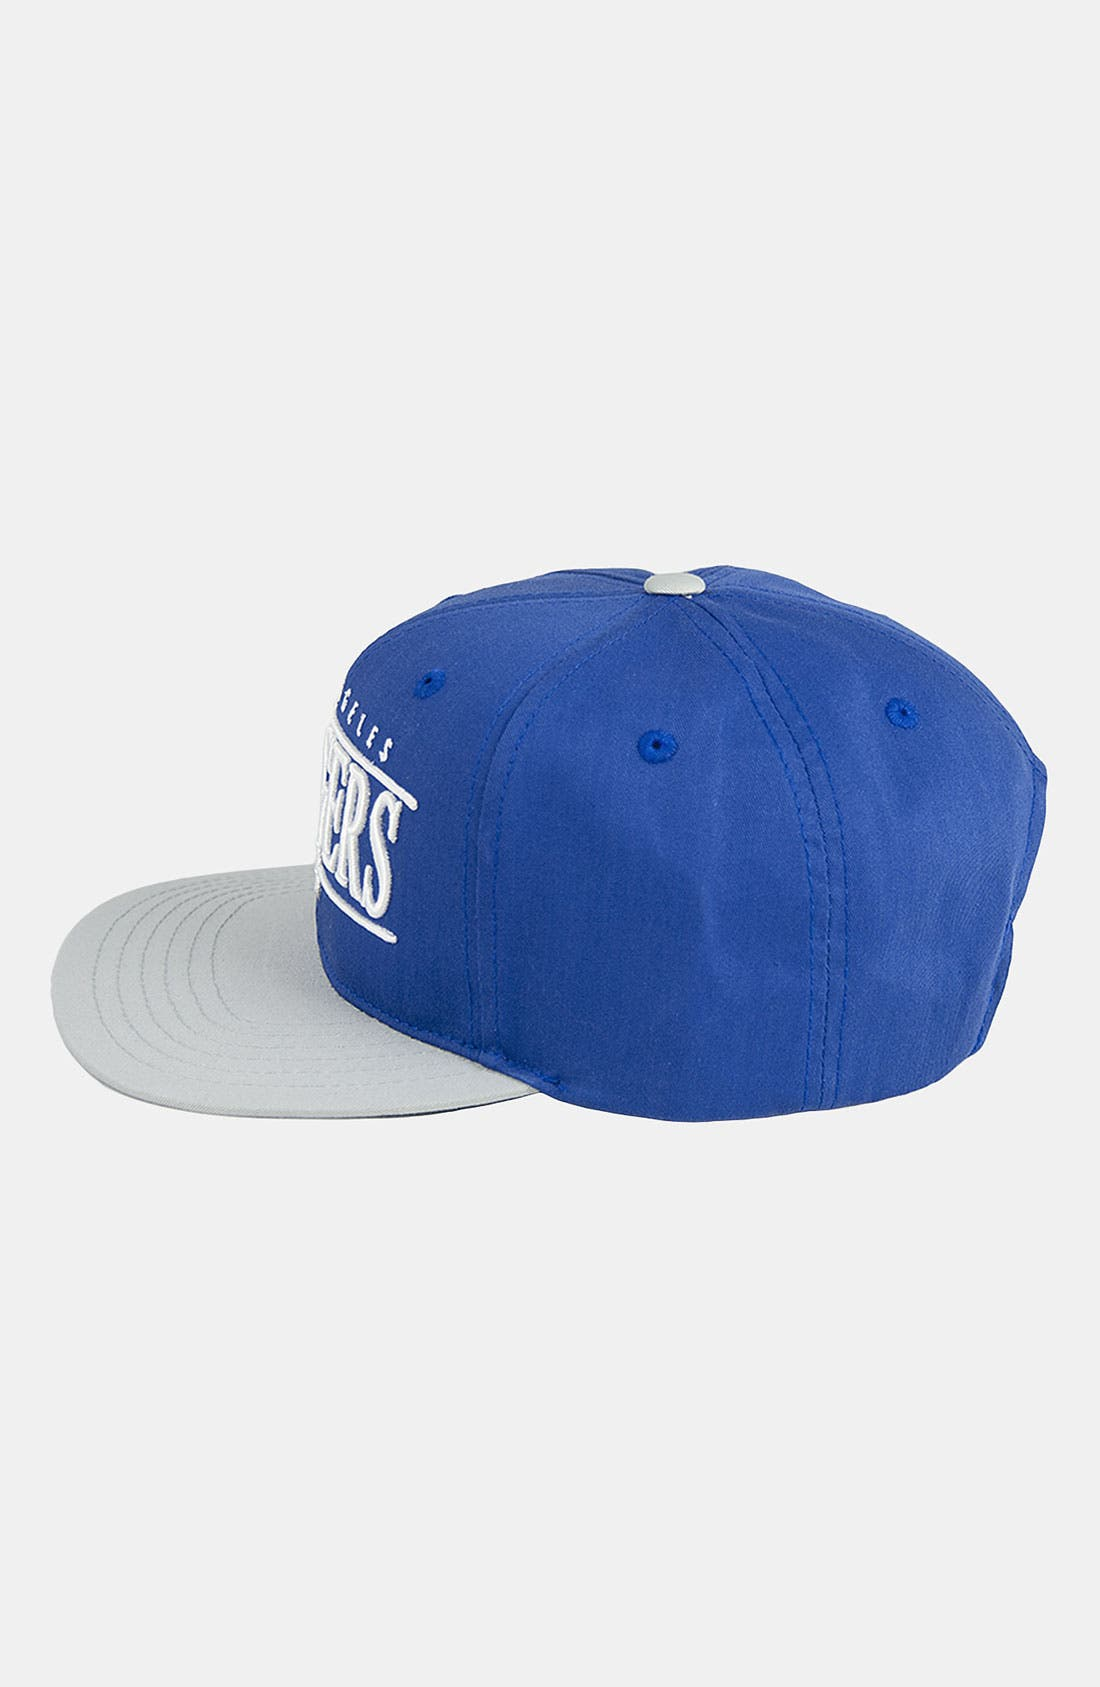 Alternate Image 3  - American Needle 'Los Angeles Dodgers - Nineties' Twill Snapback Baseball Cap